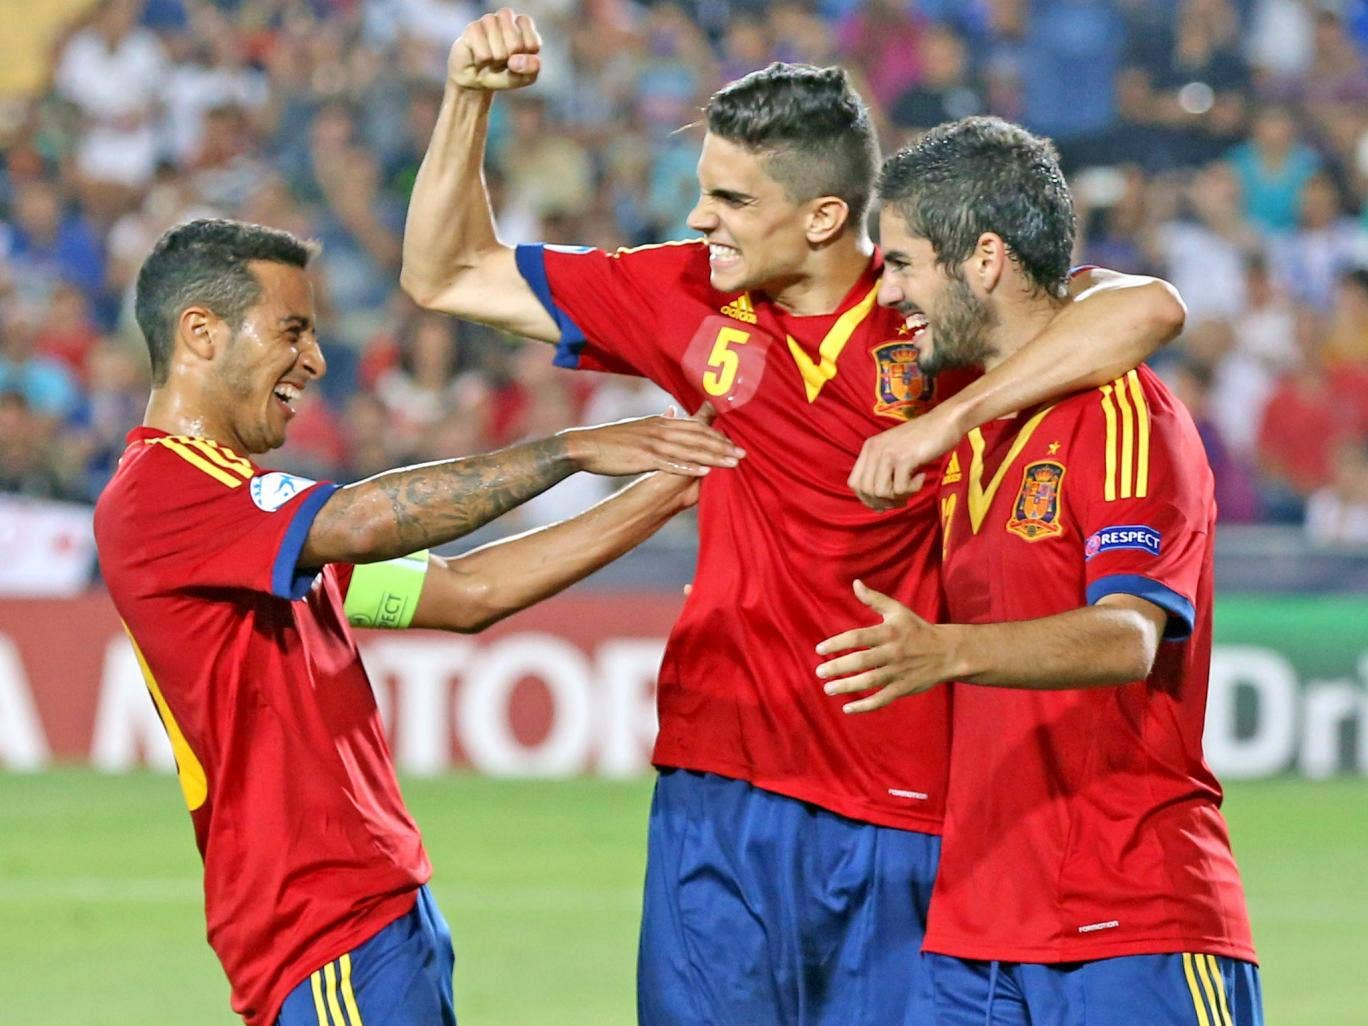 Isco (right) celebrates Spain's fourth goal with teammates Marc Bartra (centre) and Thiago, who scored the first three